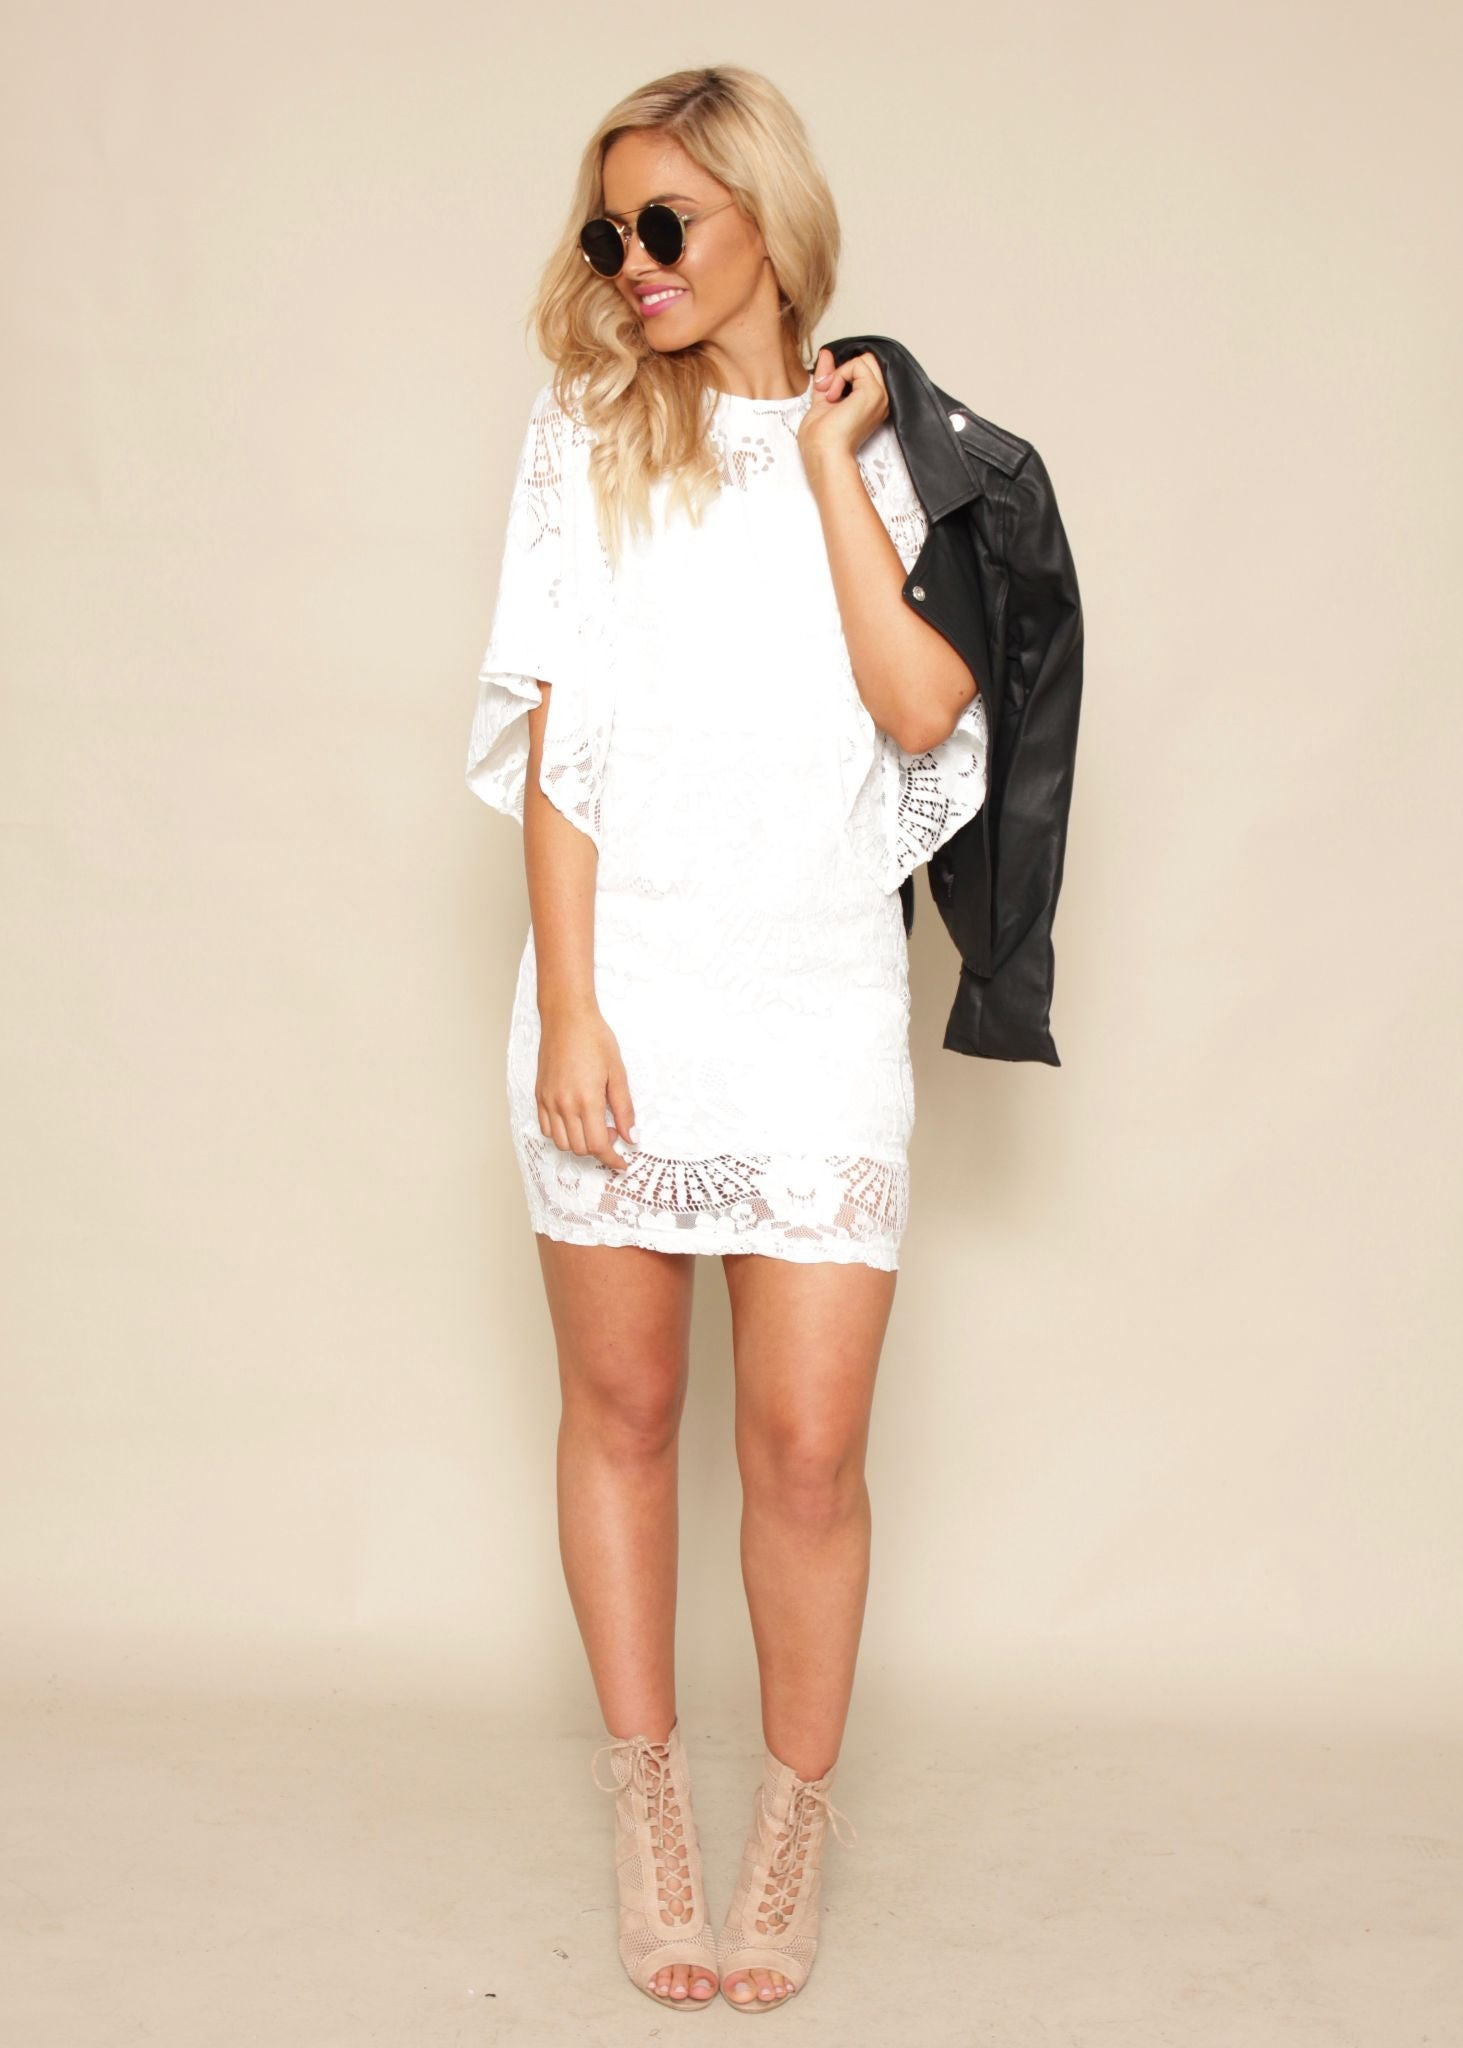 Fools Gold Lace Dress - White